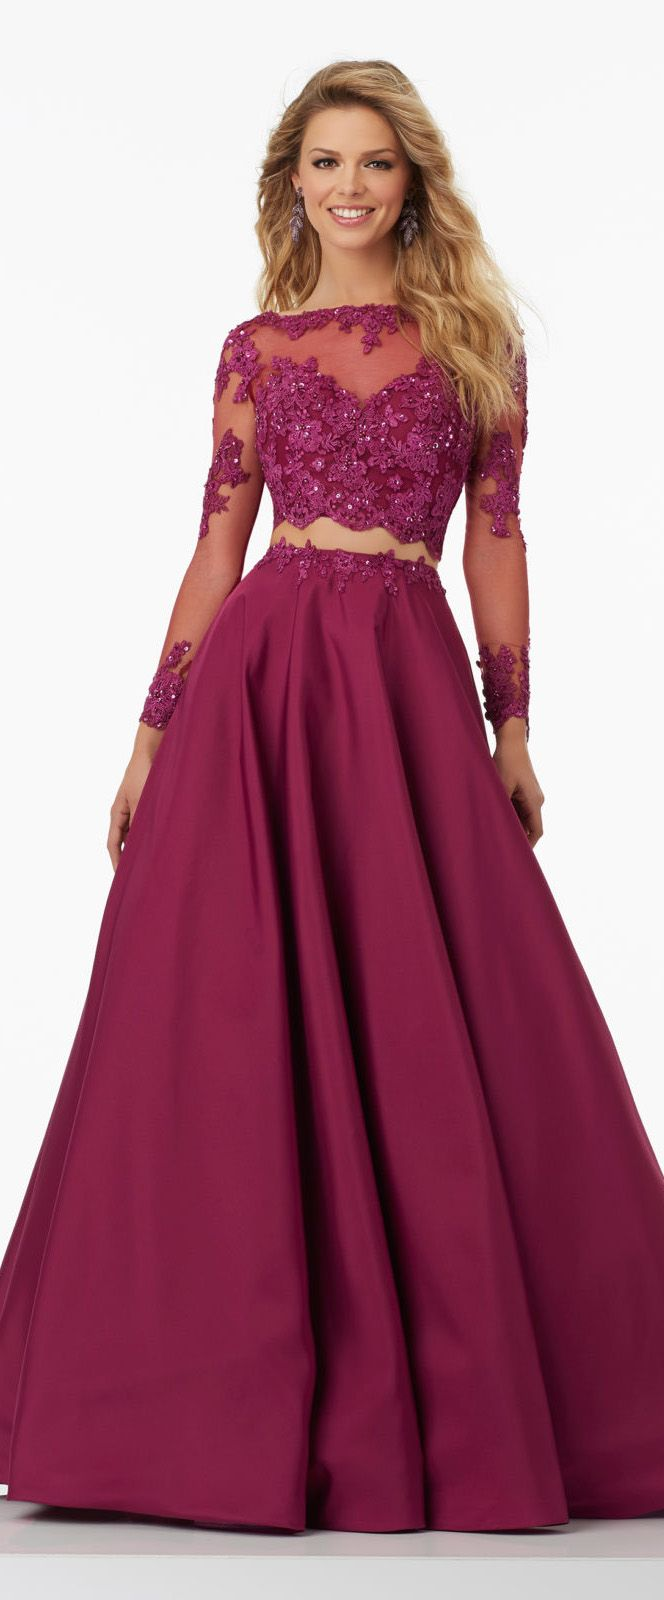 3aa9a49e6e83 2017 New Fashion Two Piece Long Sleeves Prom Dress Lace Satin Formal Gown   promdress  promgown  prom  prom2017  gown  burgundy  evening  eveninggown